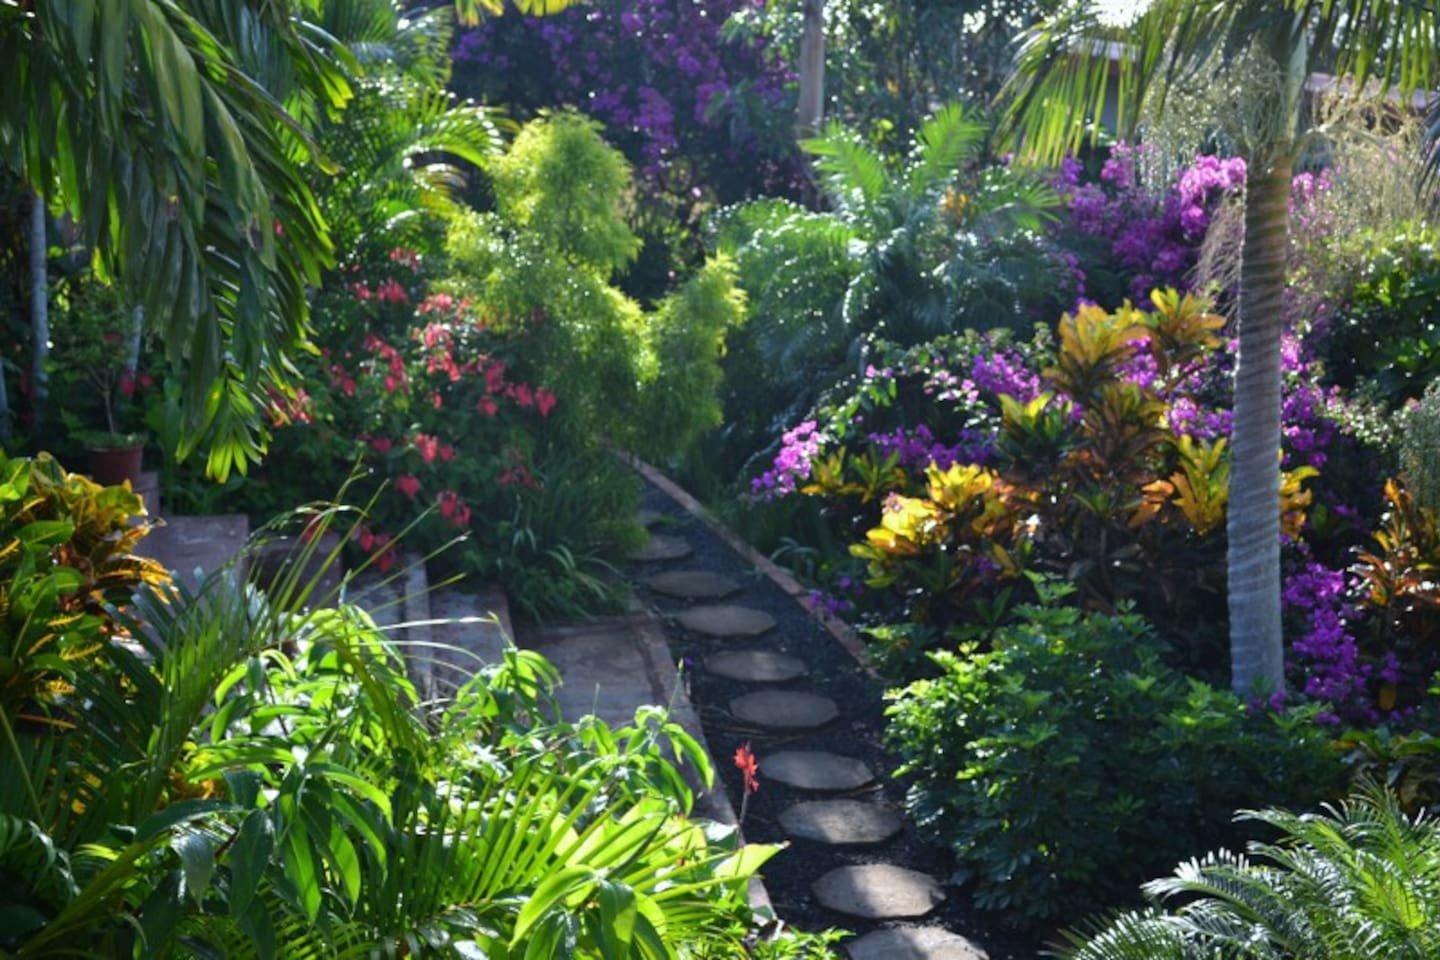 Luxurious Gardens to stroll and explore